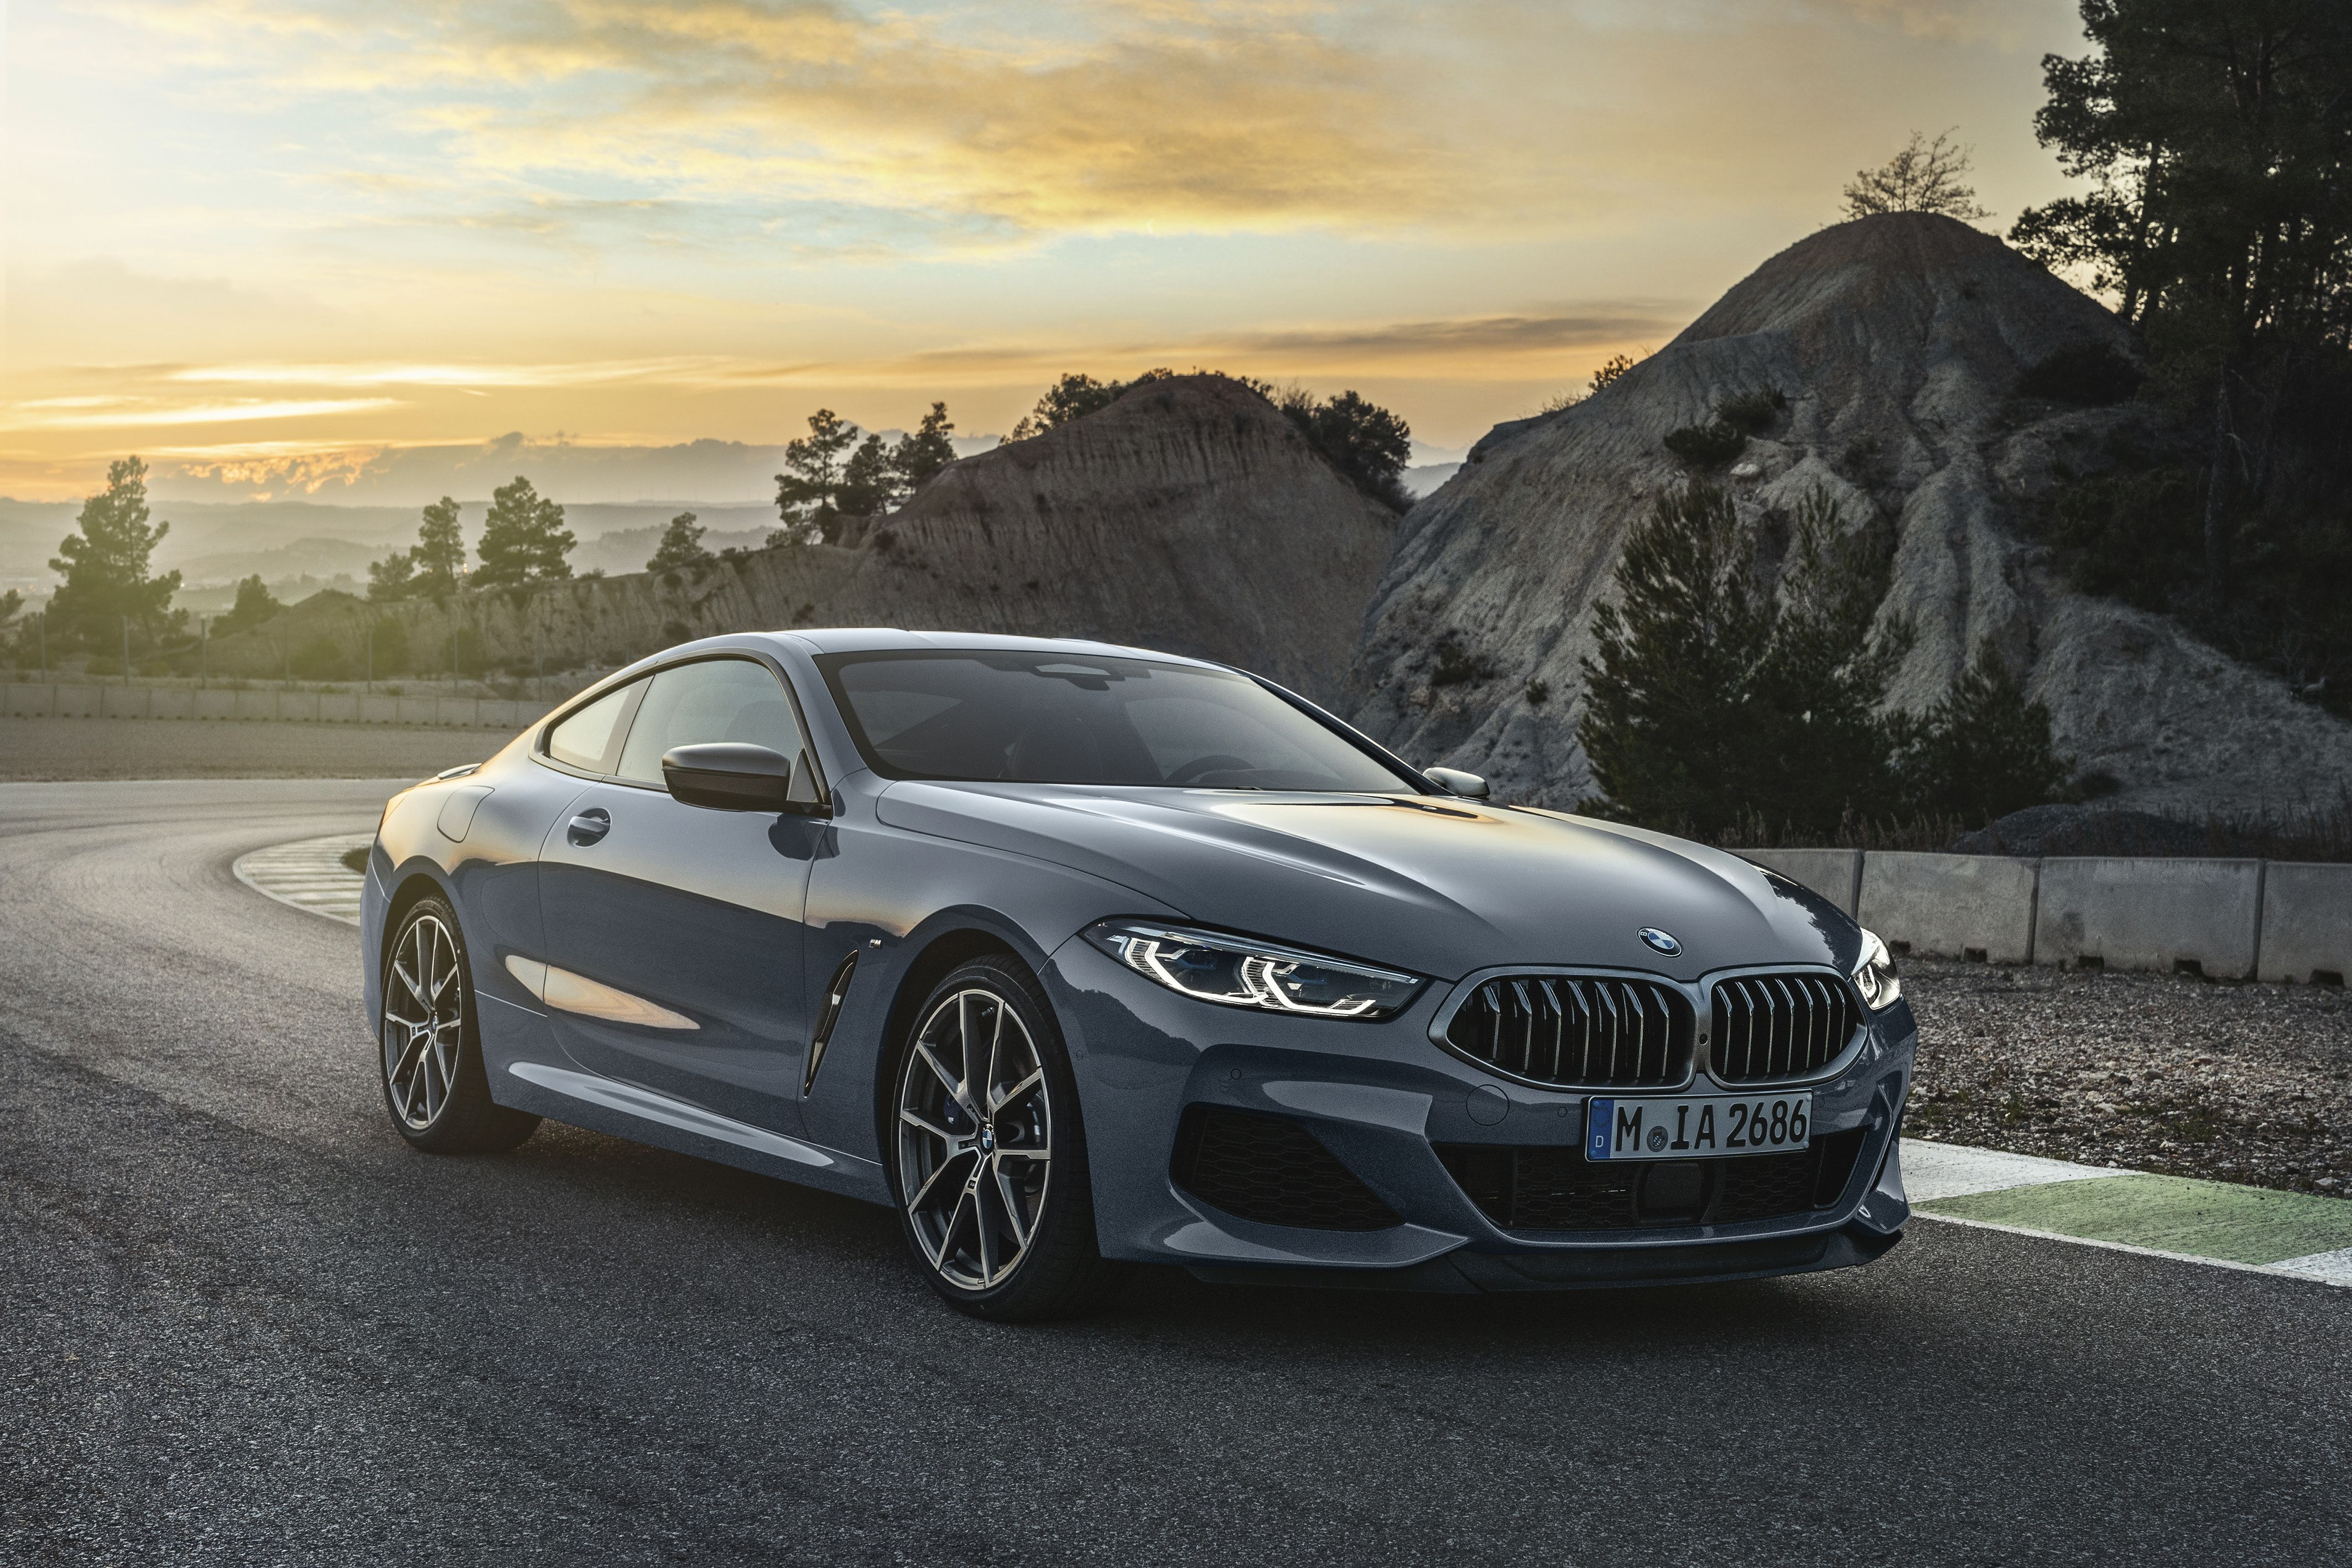 The New Bmw 8 Series Has Bentley In Its Sights Bmw New Bmw Bmw Cars